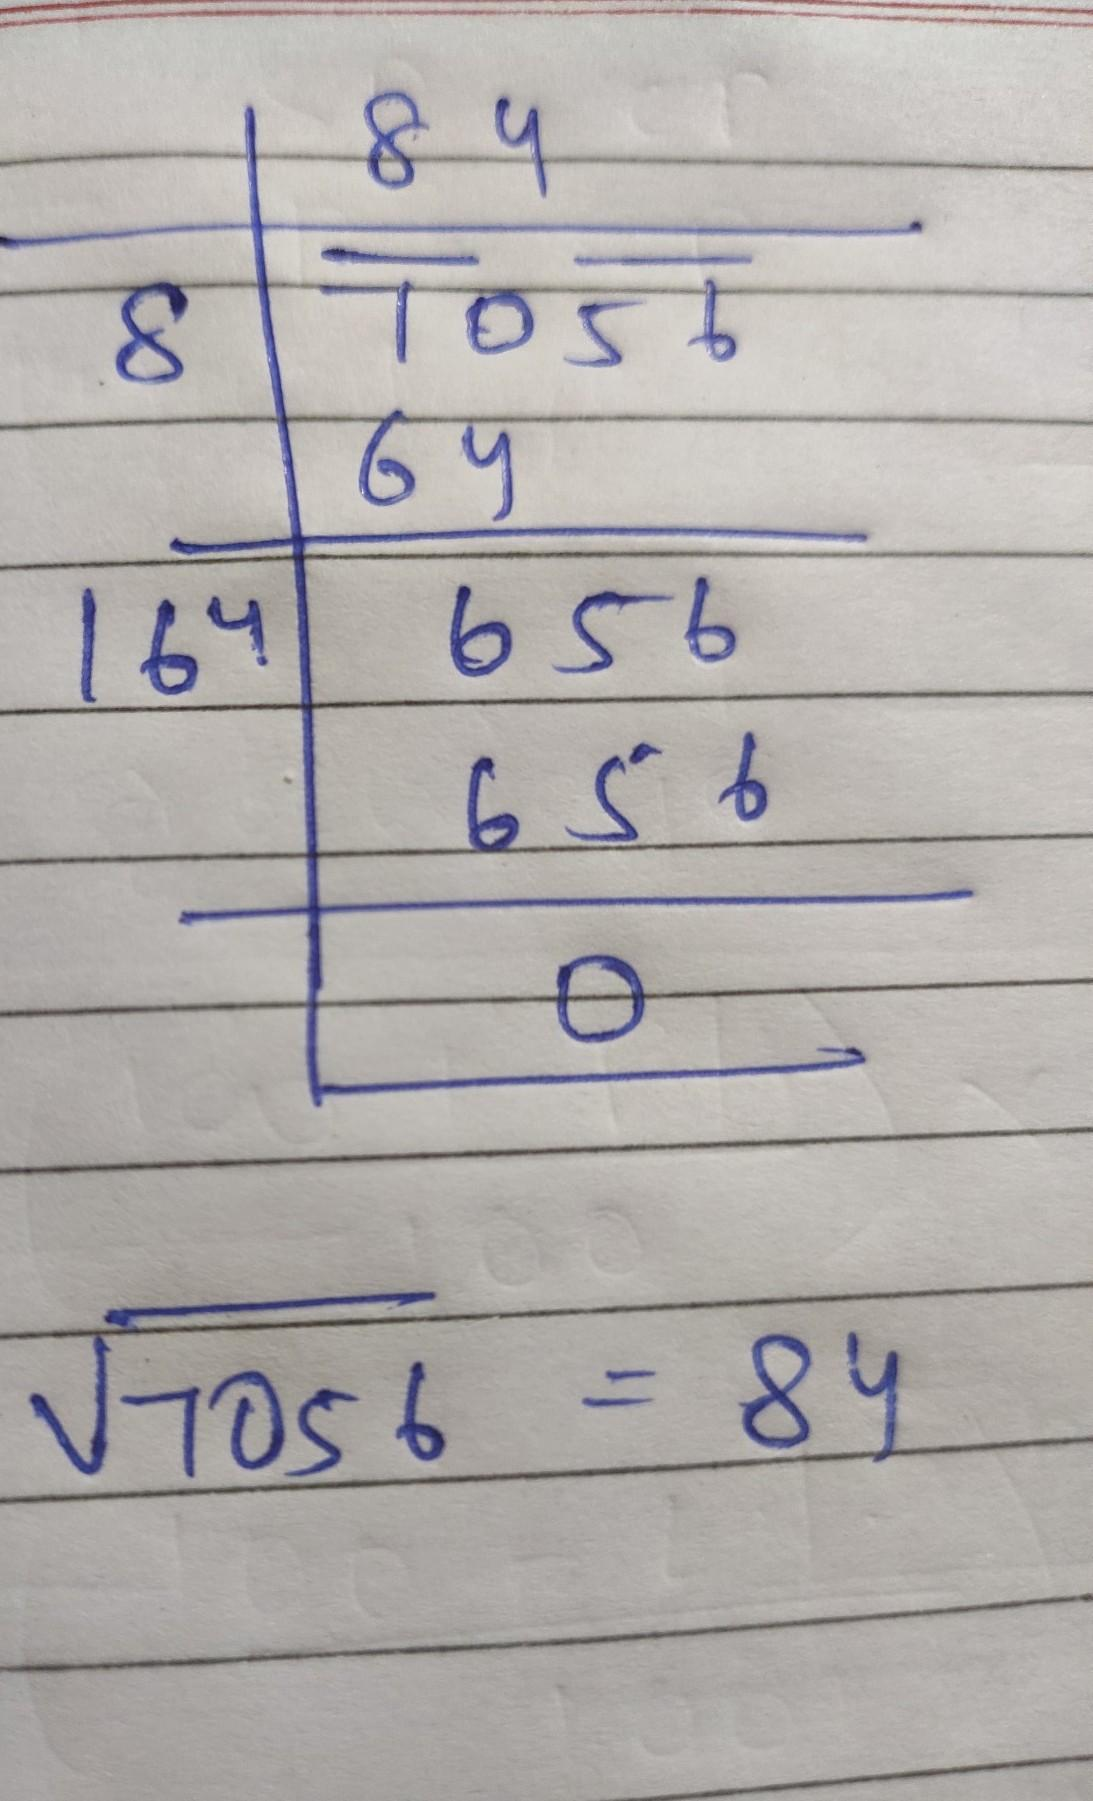 square root of 108241 using long division method - Brainly.in